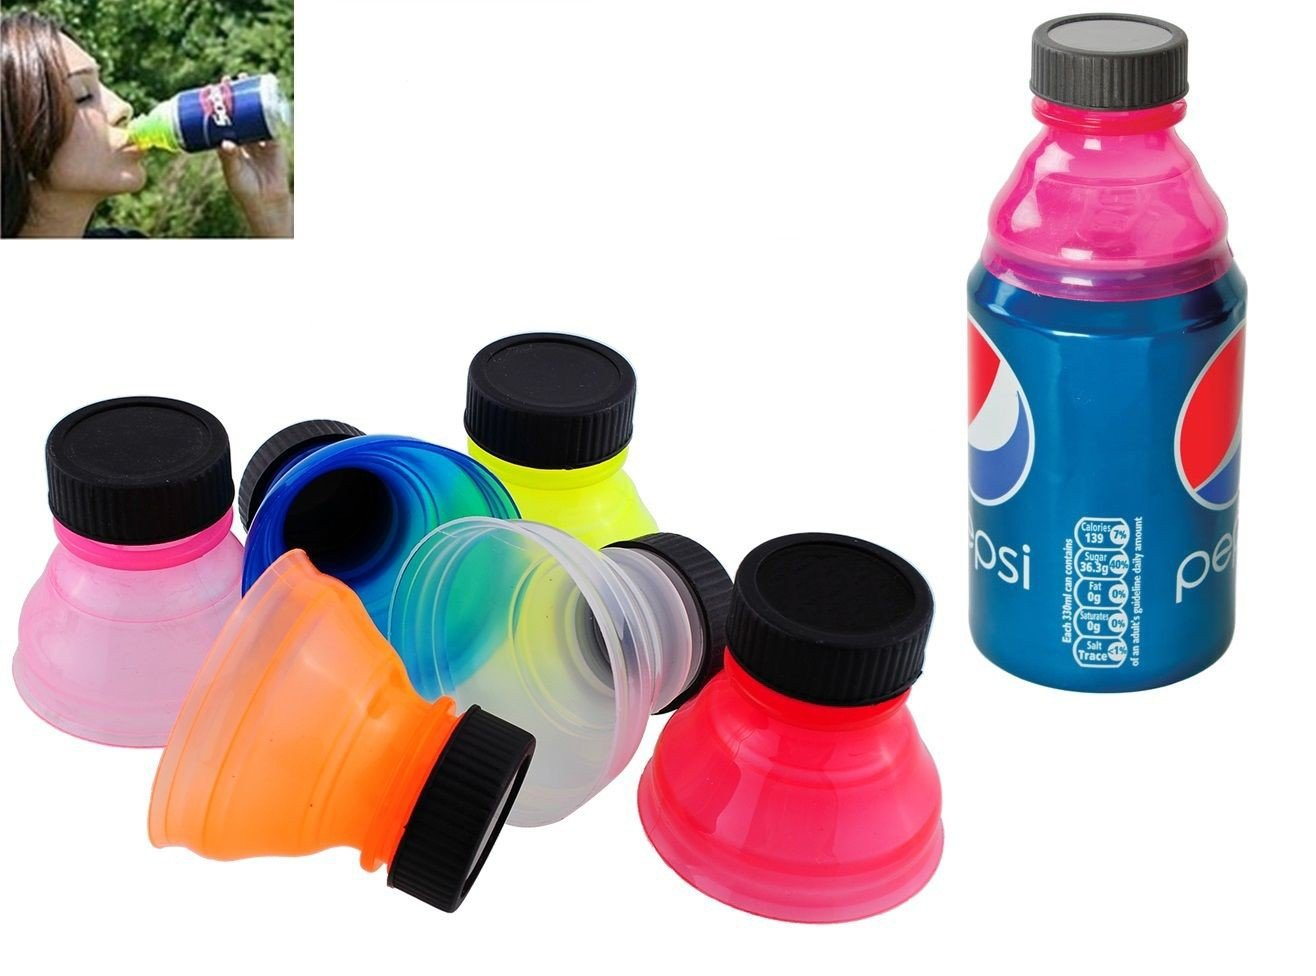 takestop® Set 3 Tappi Tappo in PLASTICA Adattatore Universale per LATTINE Salva EFFERVESCENZA Idea Regalo Gadget Colore Casuale